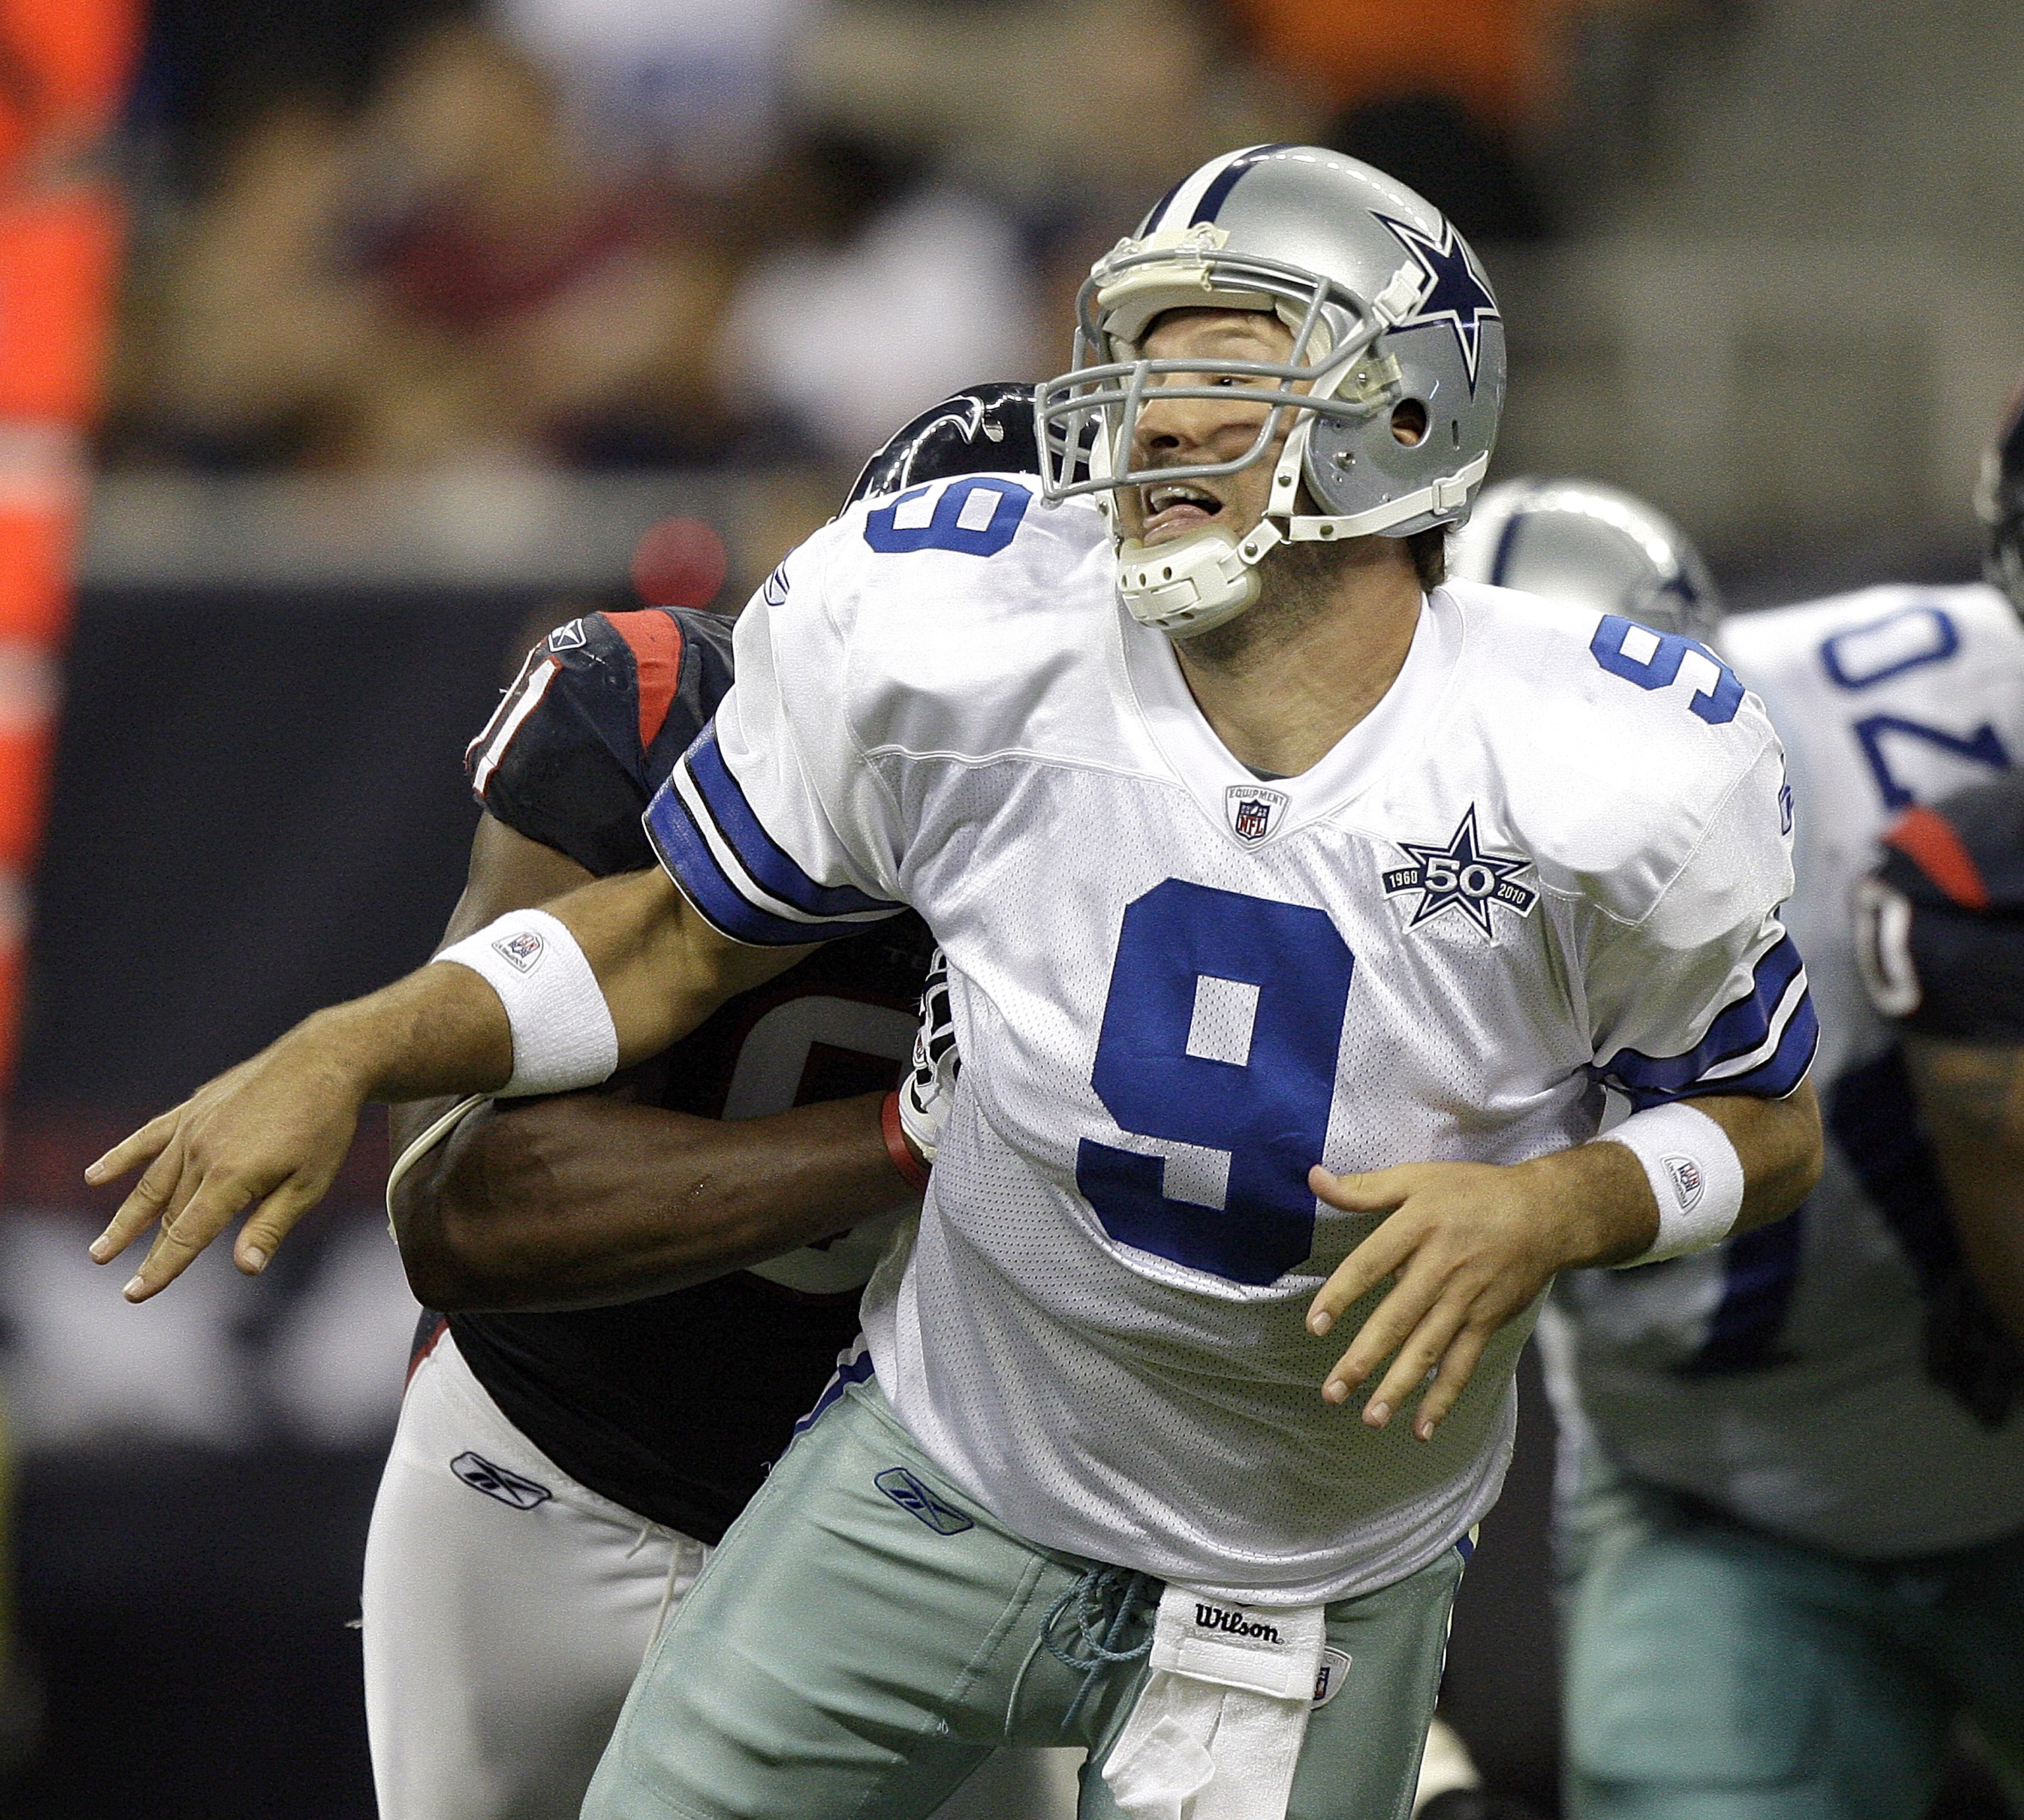 HOUSTON - AUGUST 28: Quarterback Tony Romo #9 of the Dallas Cowboys is hit from behind as he let's the ball go during a football game against the Houston Texans at Reliant Stadium on August 28, 2010 in Houston, Texas. Houston won 23-7. (Photo by Bob Levey